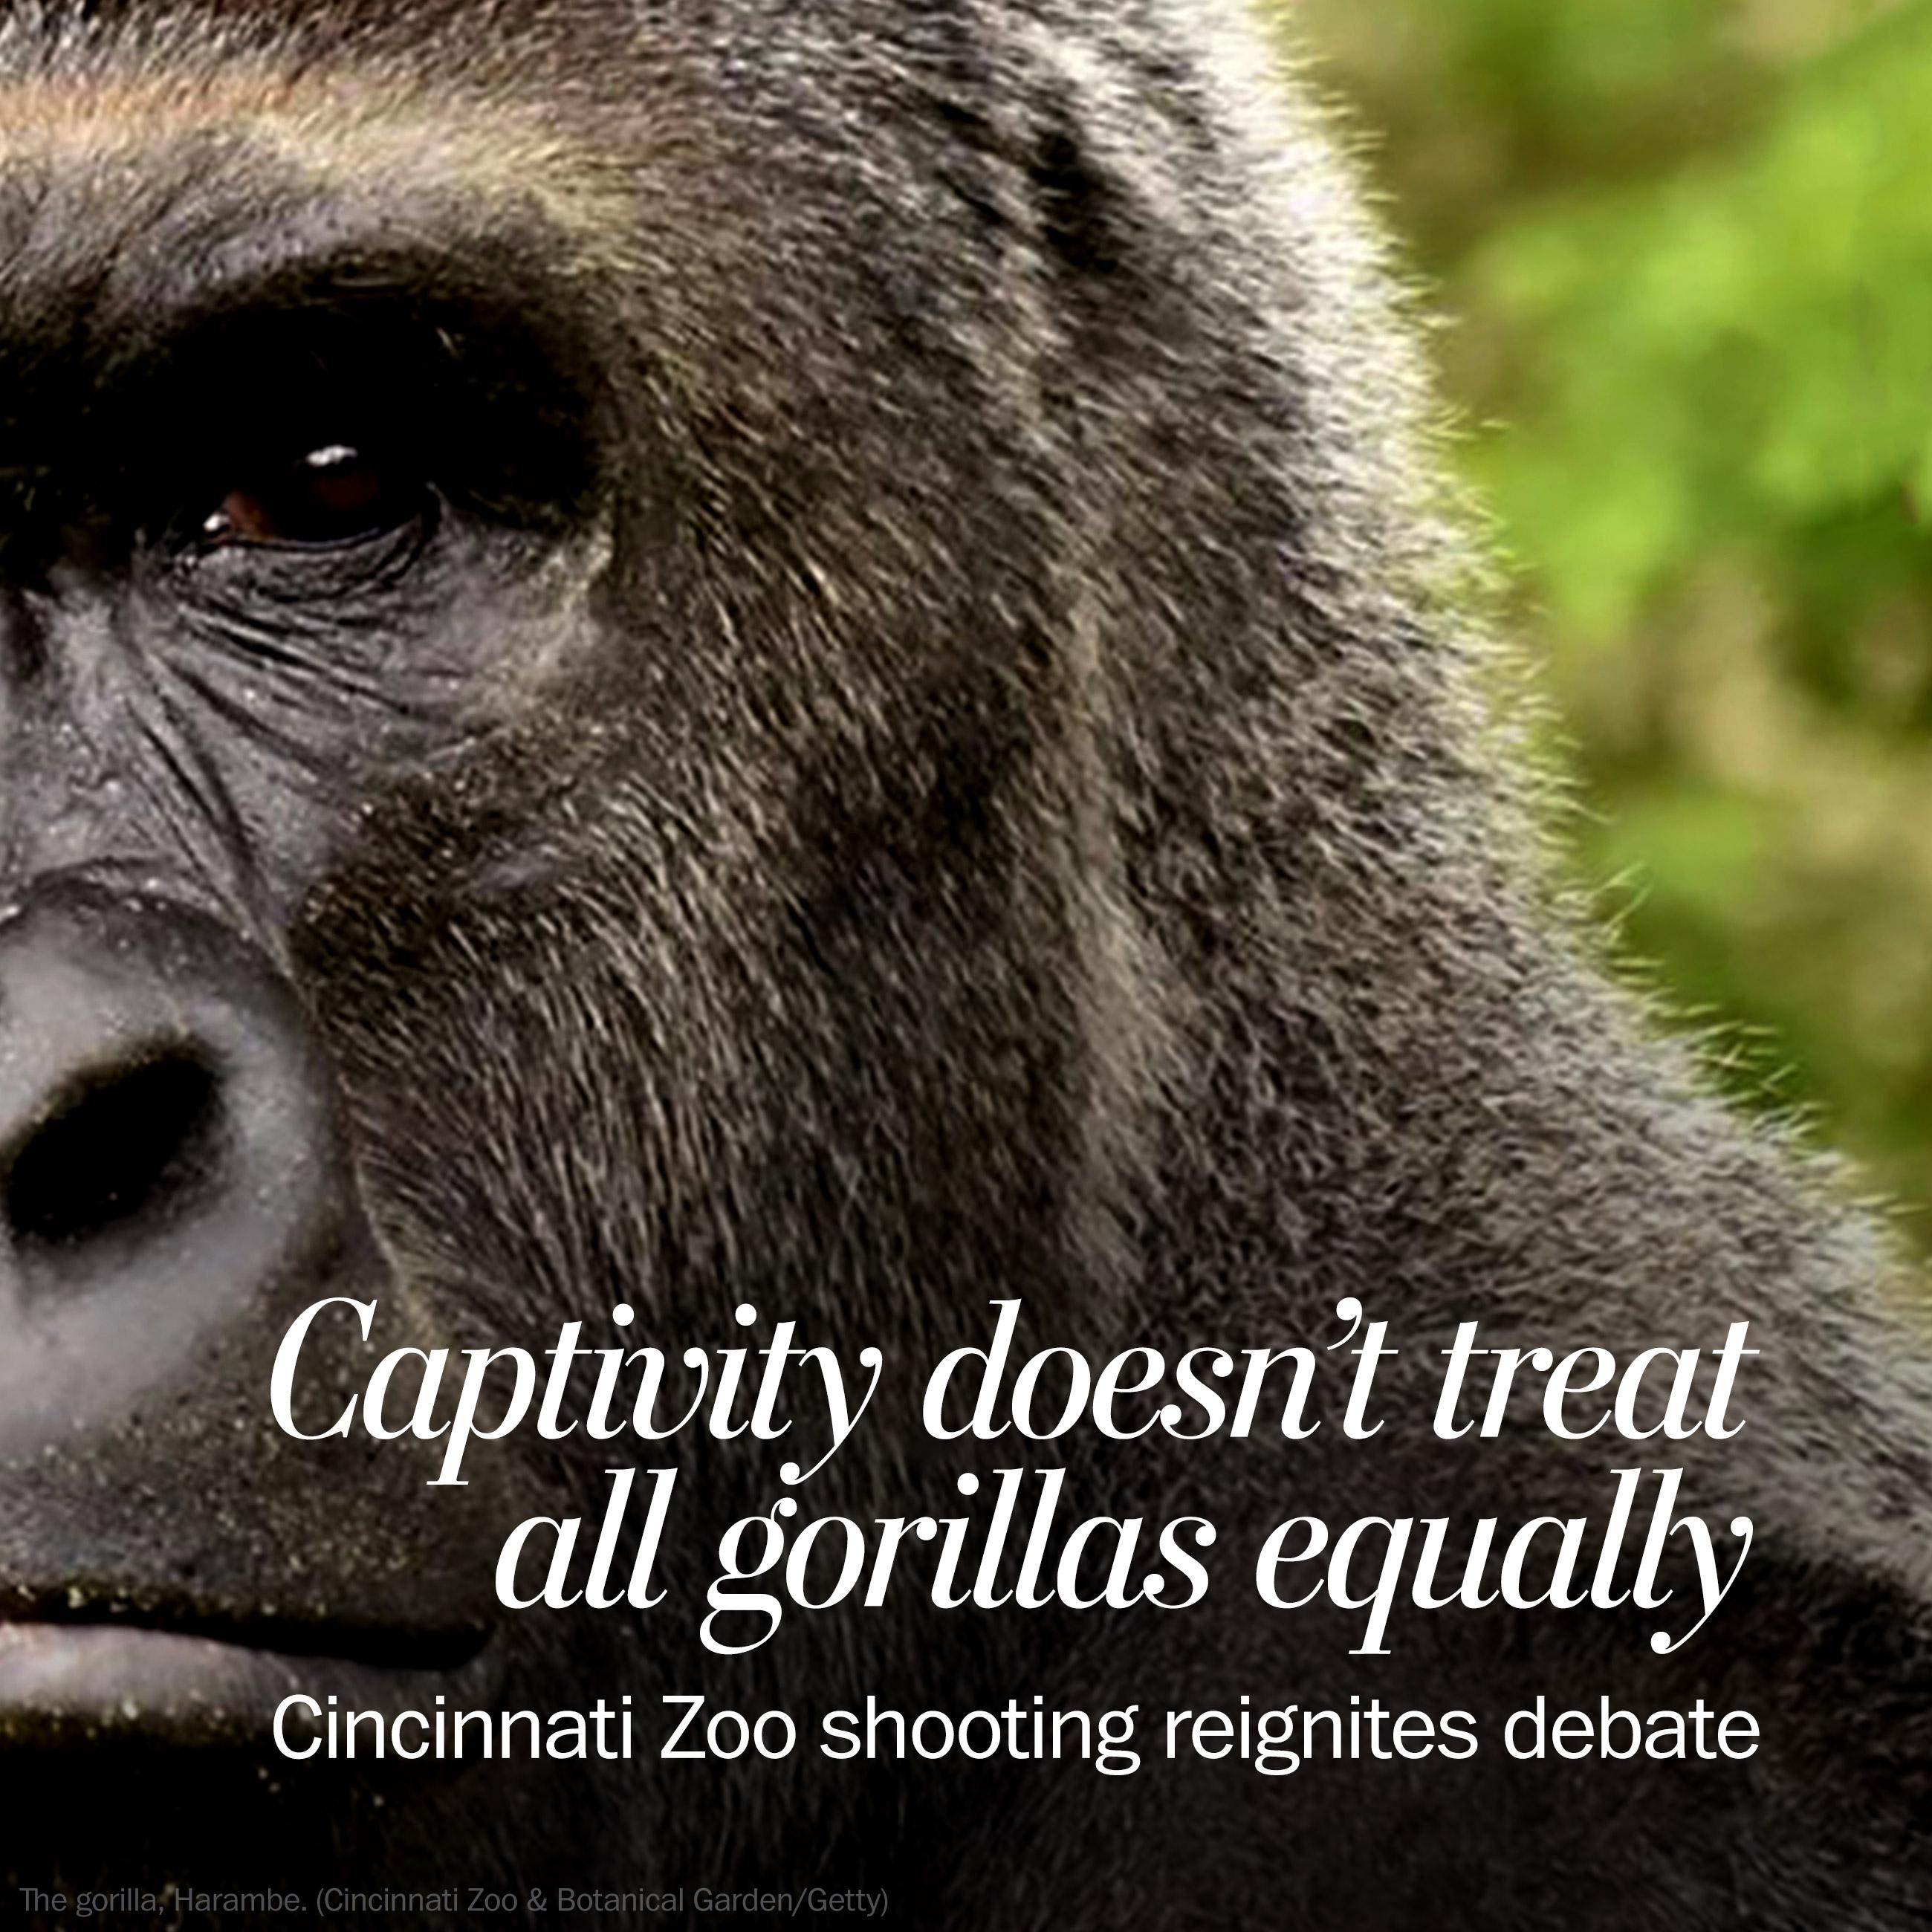 Gorilla death at Cincinnati Zoo puts debate over captive creatures in stark relief